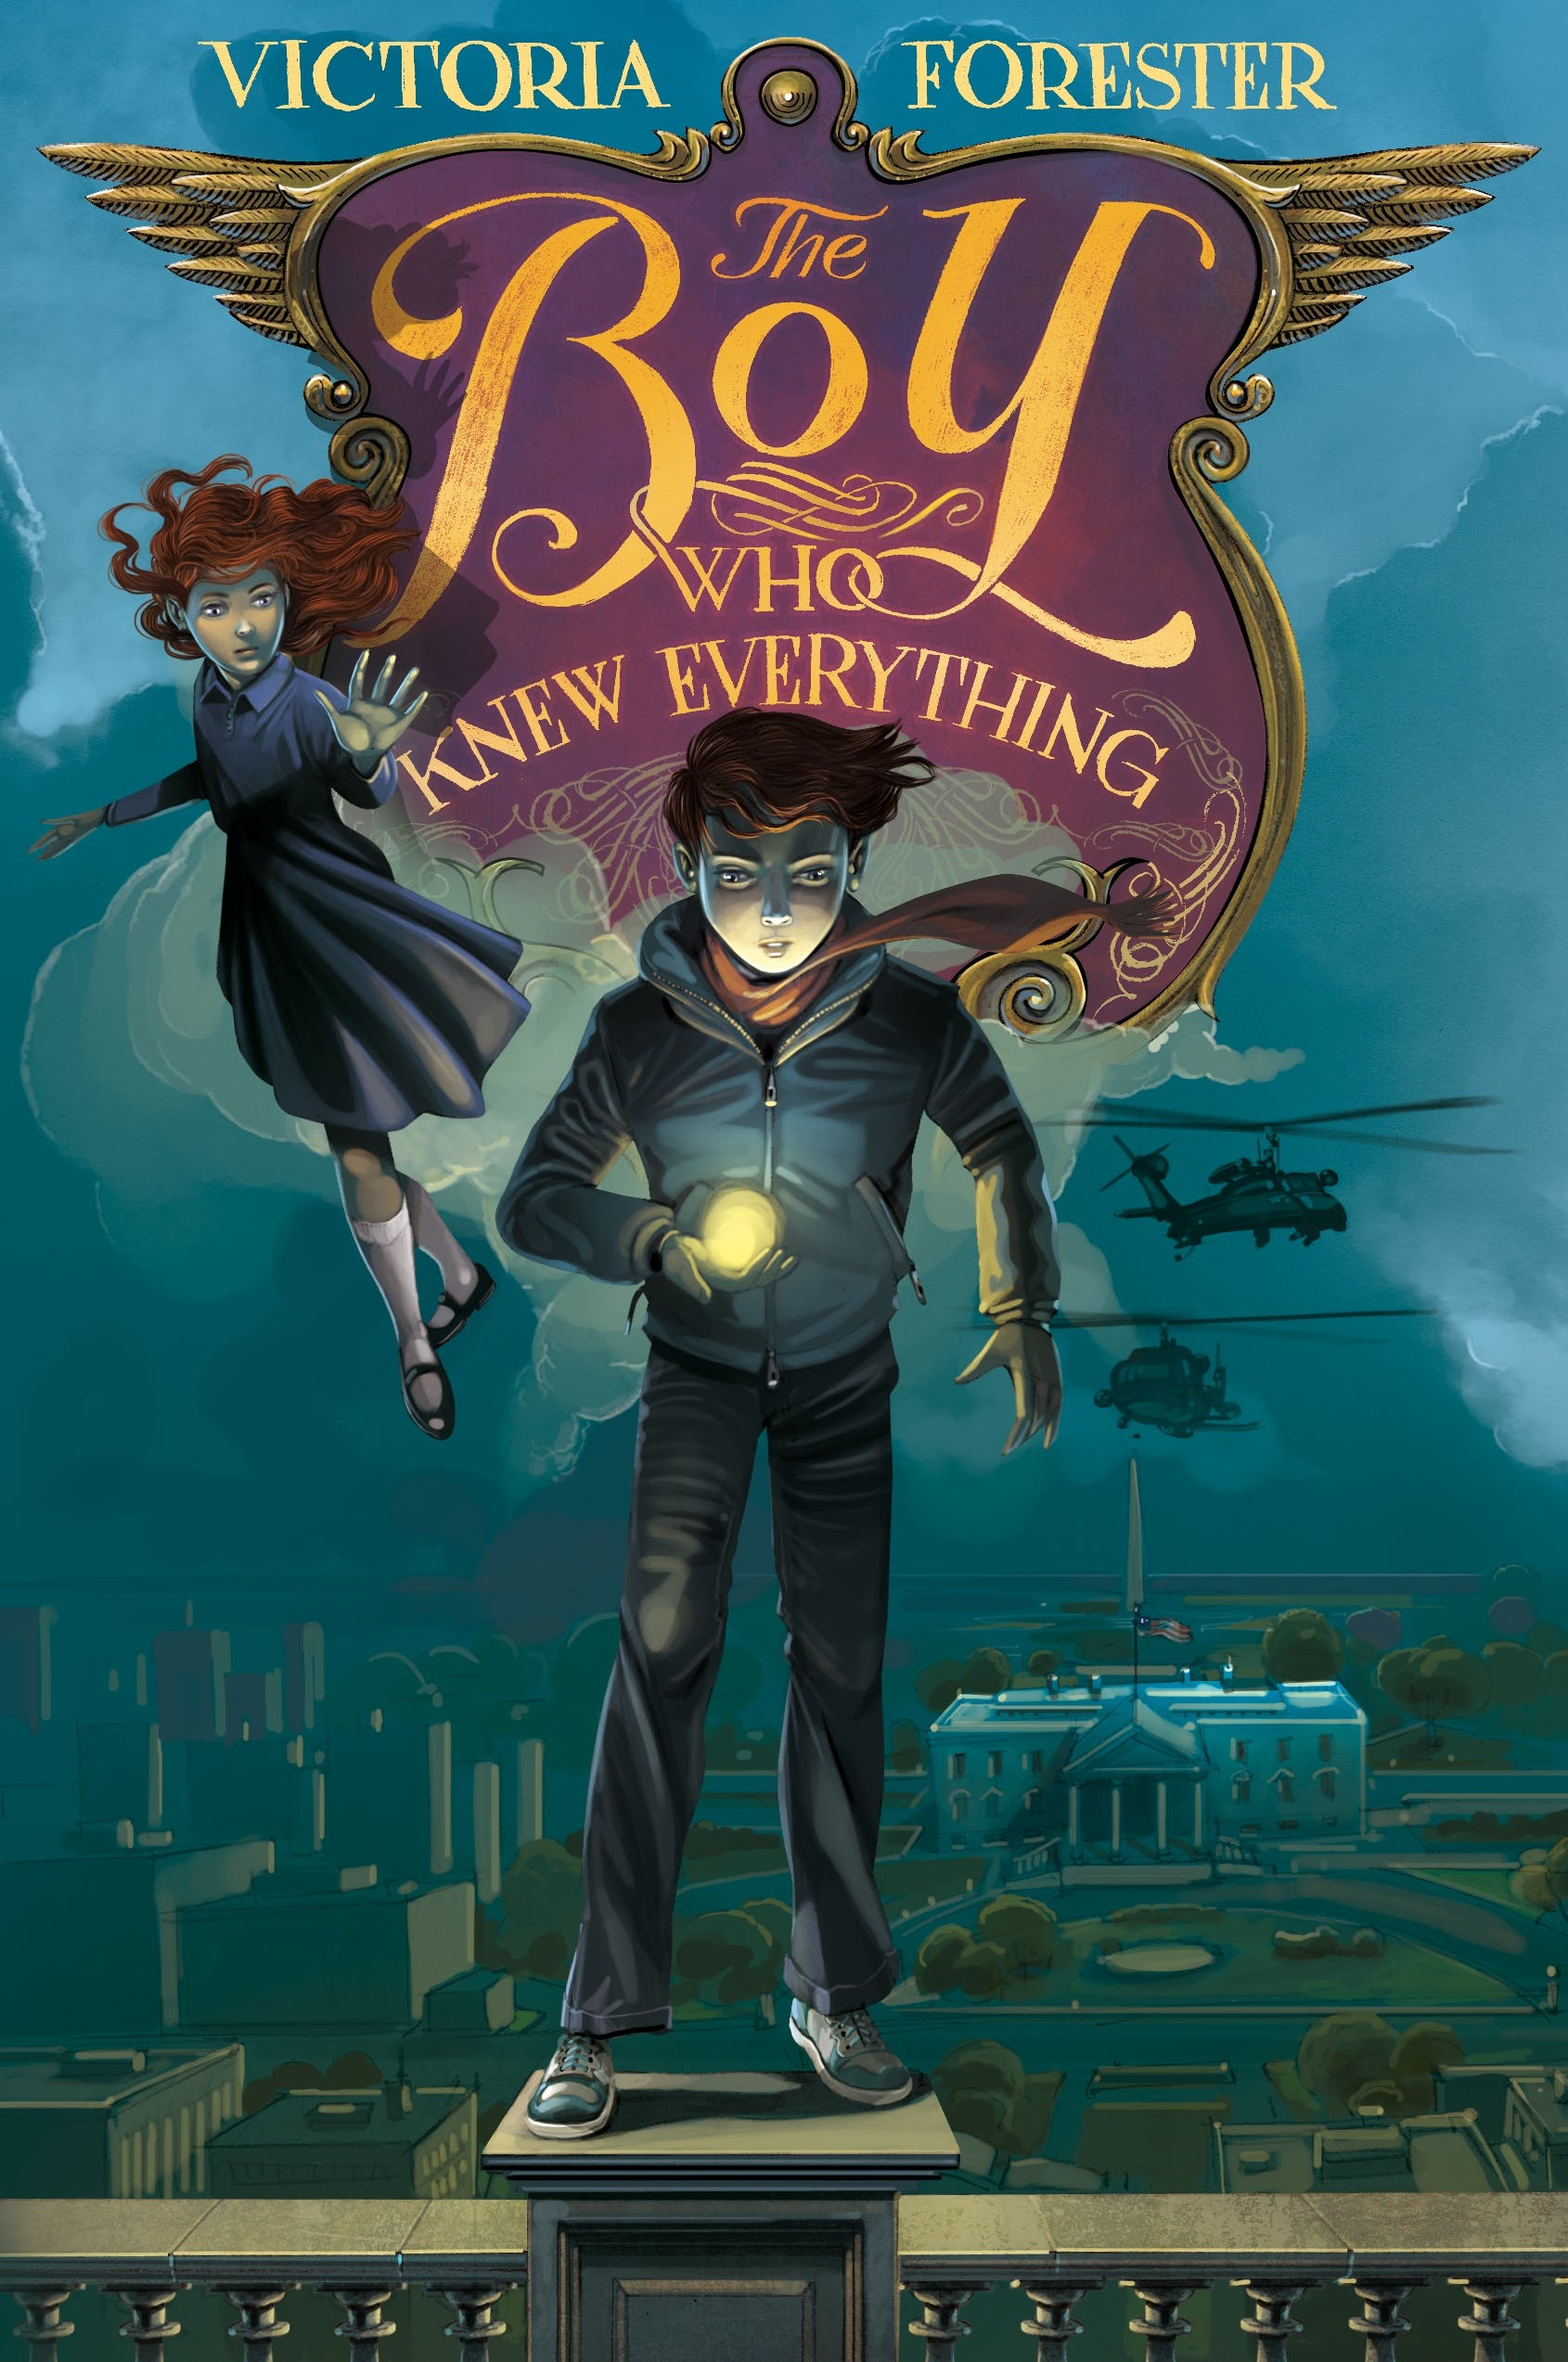 Image of The Boy Who Knew Everything